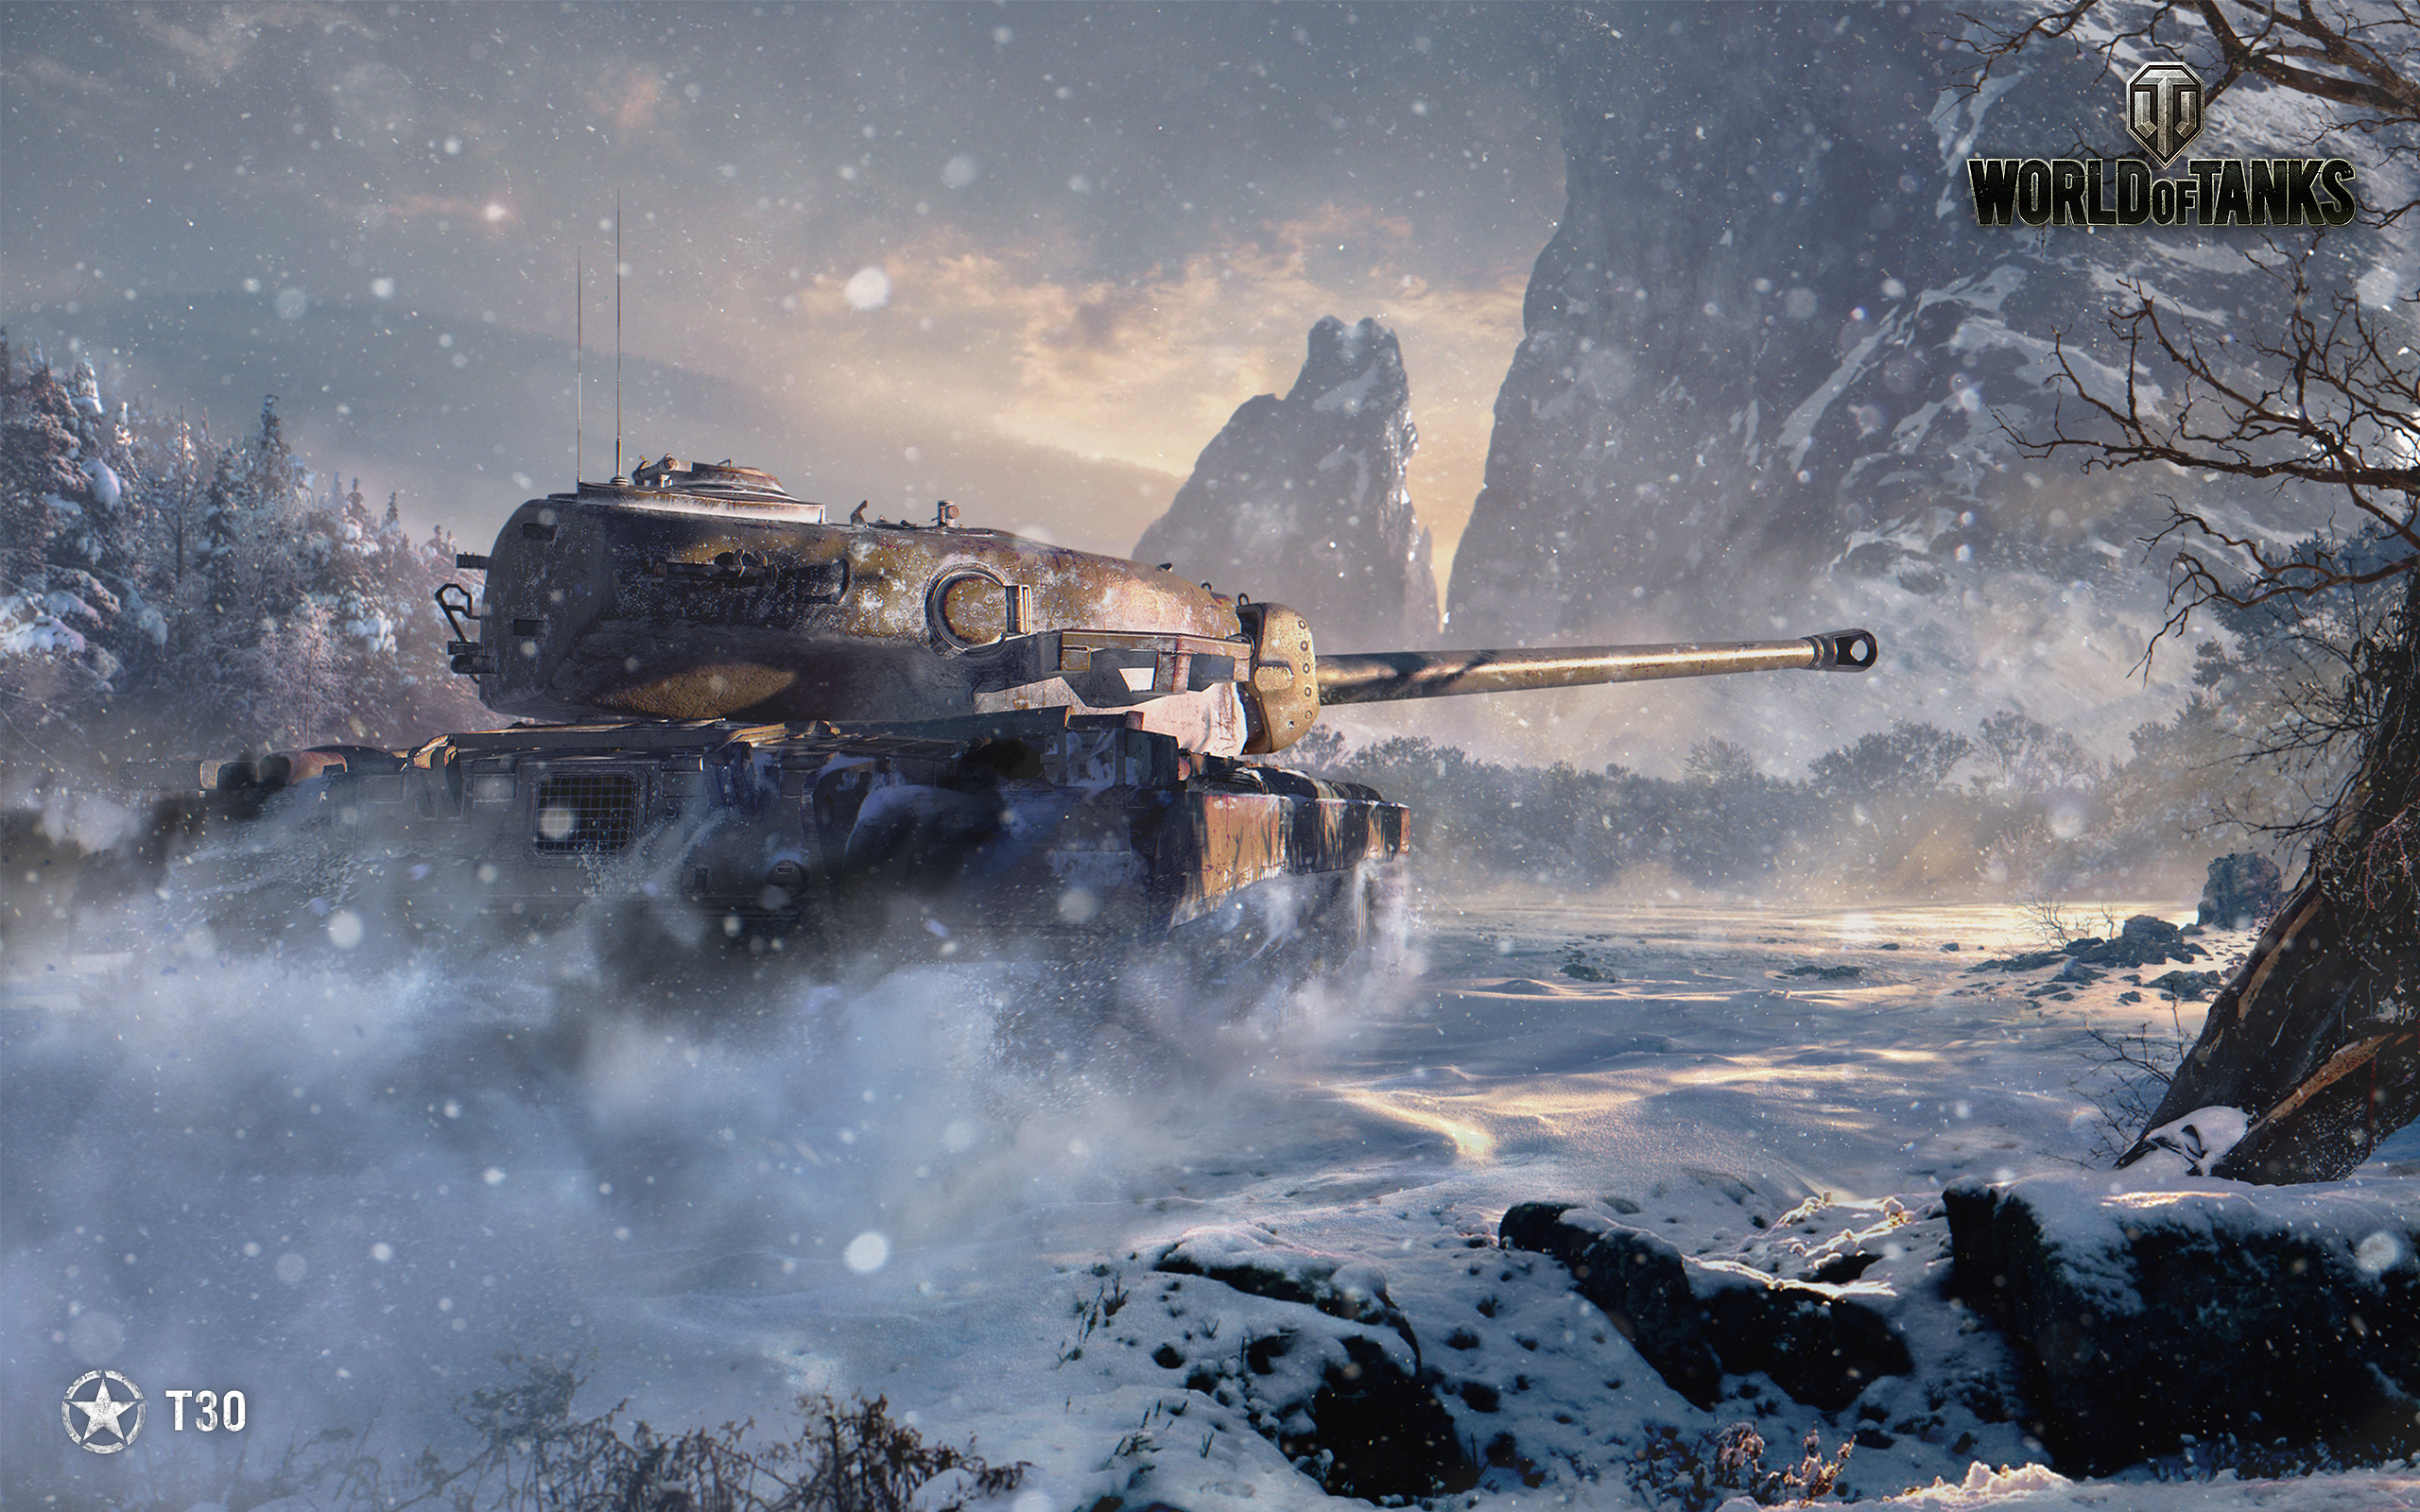 Wallpaper For December 2015 General News World Of Tanks HD Wallpapers Download Free Images Wallpaper [1000image.com]